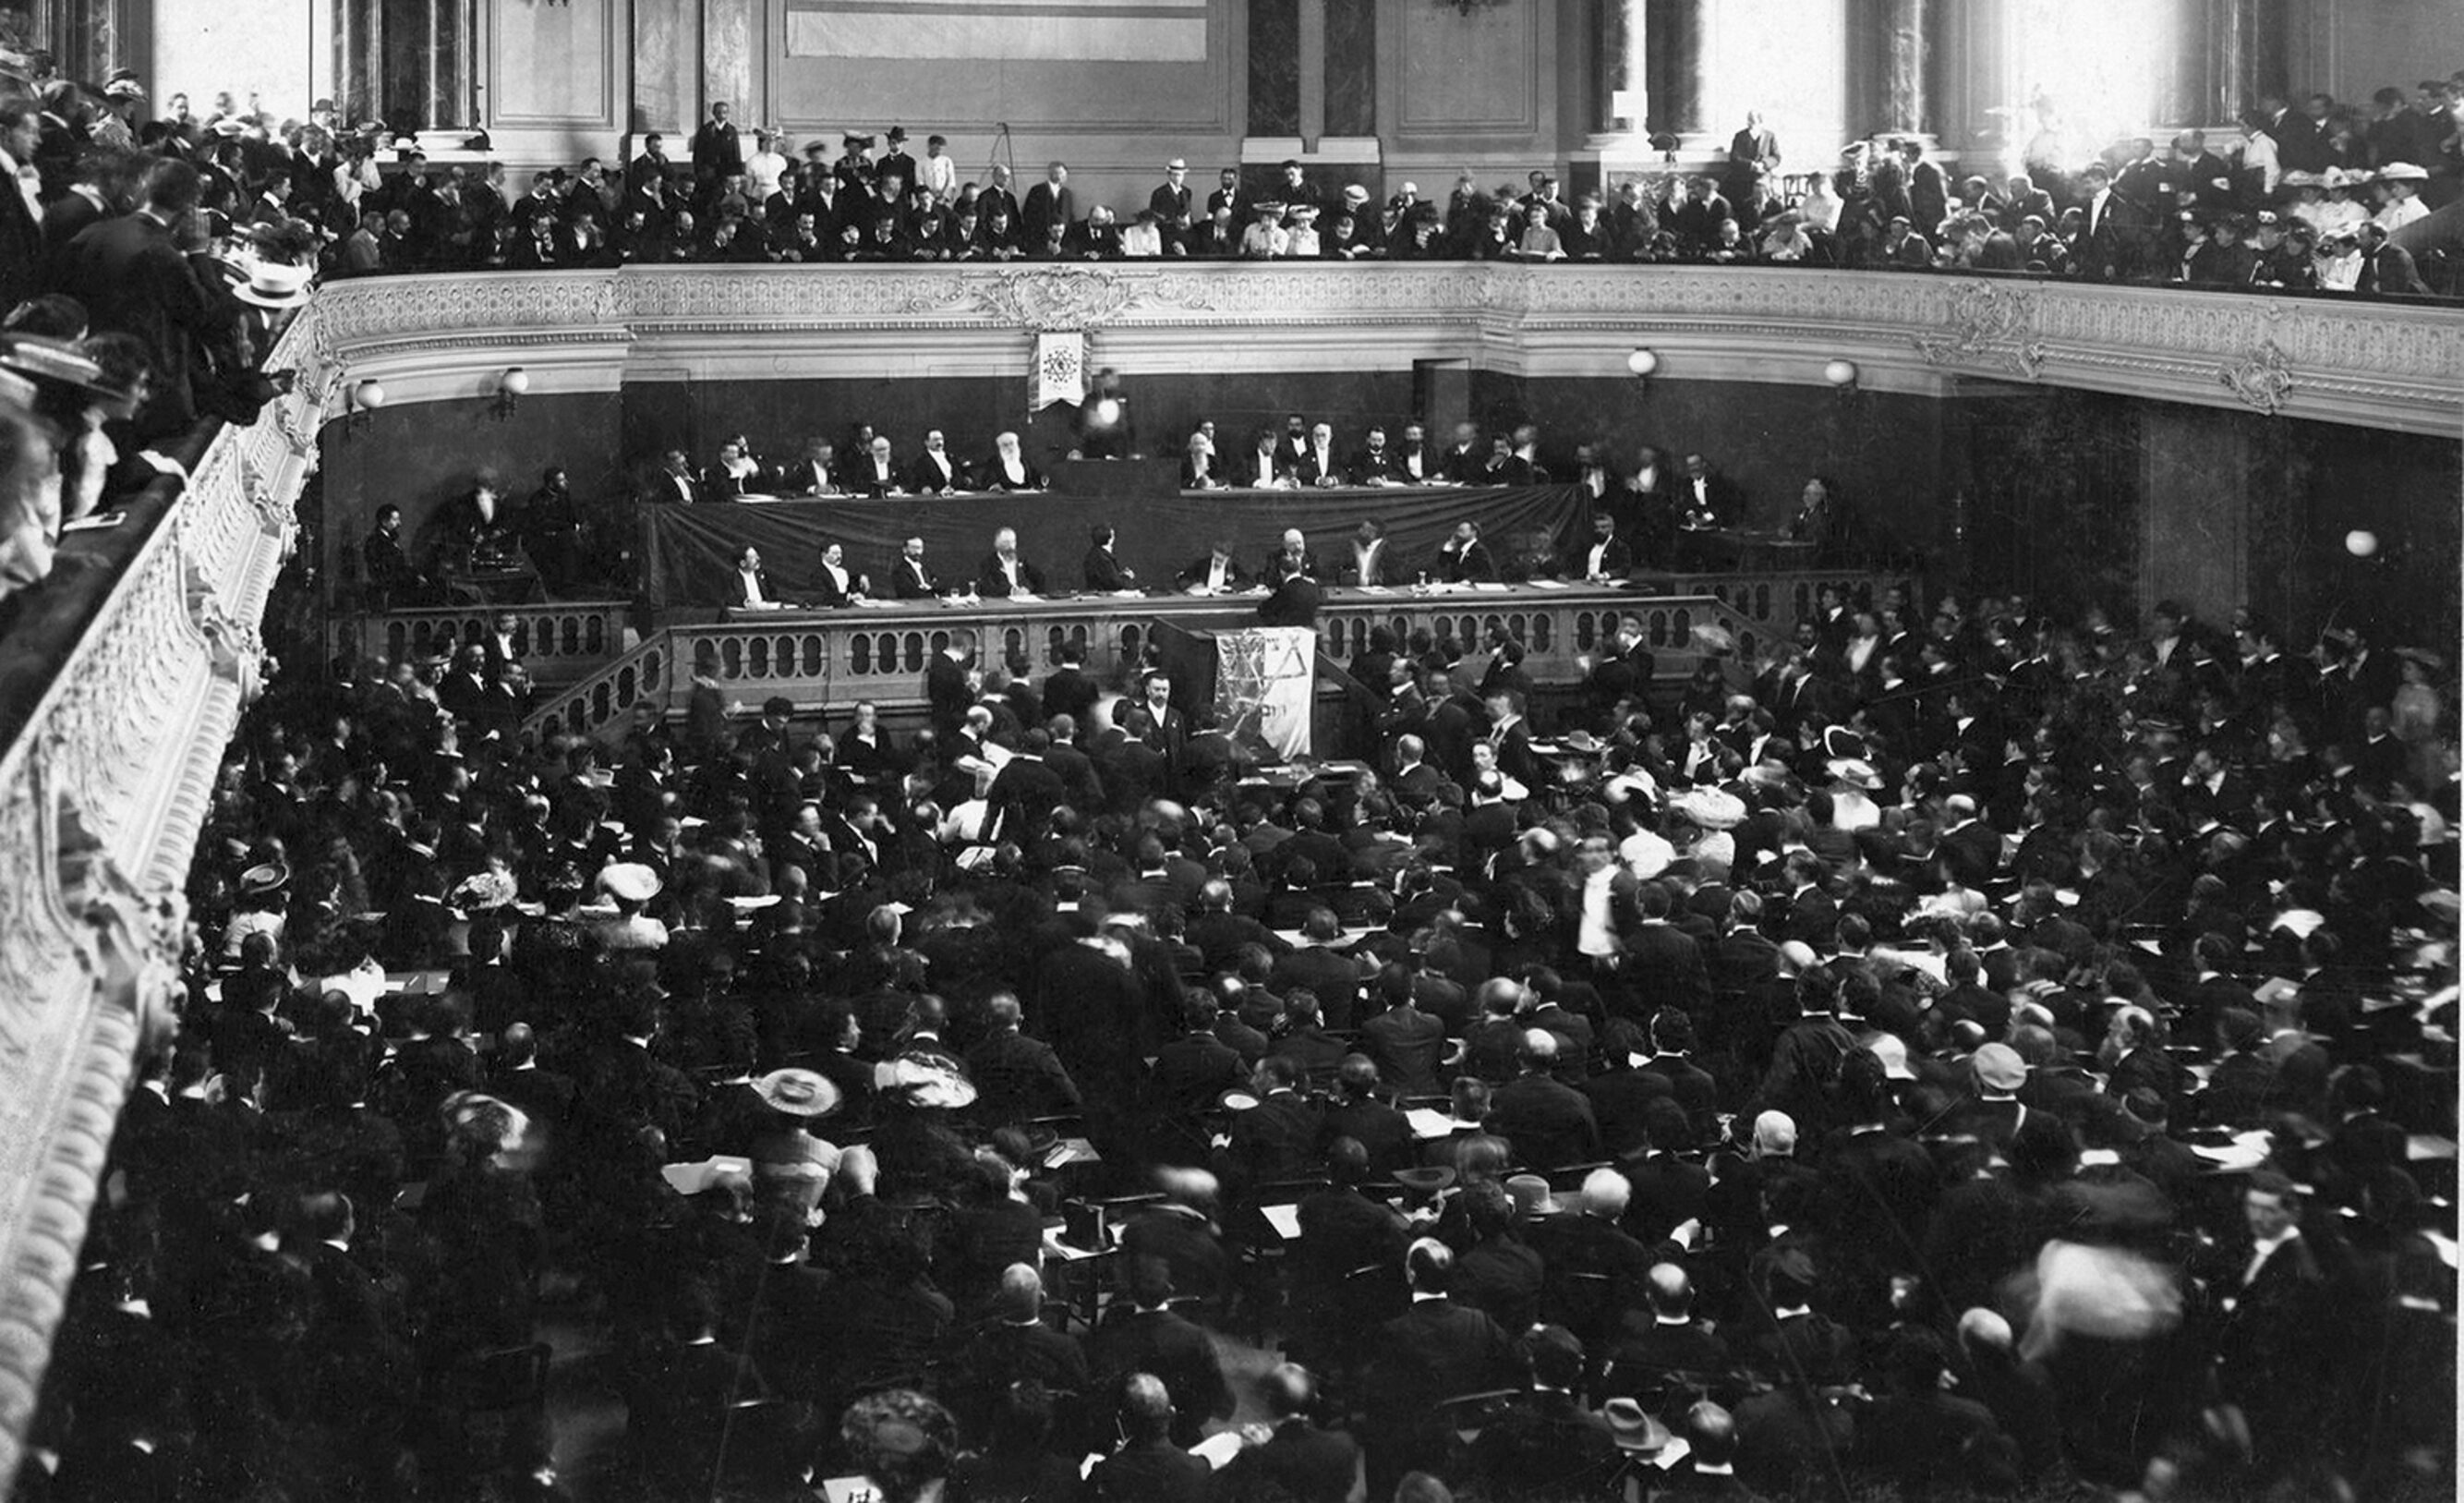 The first U.S. World Zionist Congress election in 1897 (Courtesy American Zionist Movement)